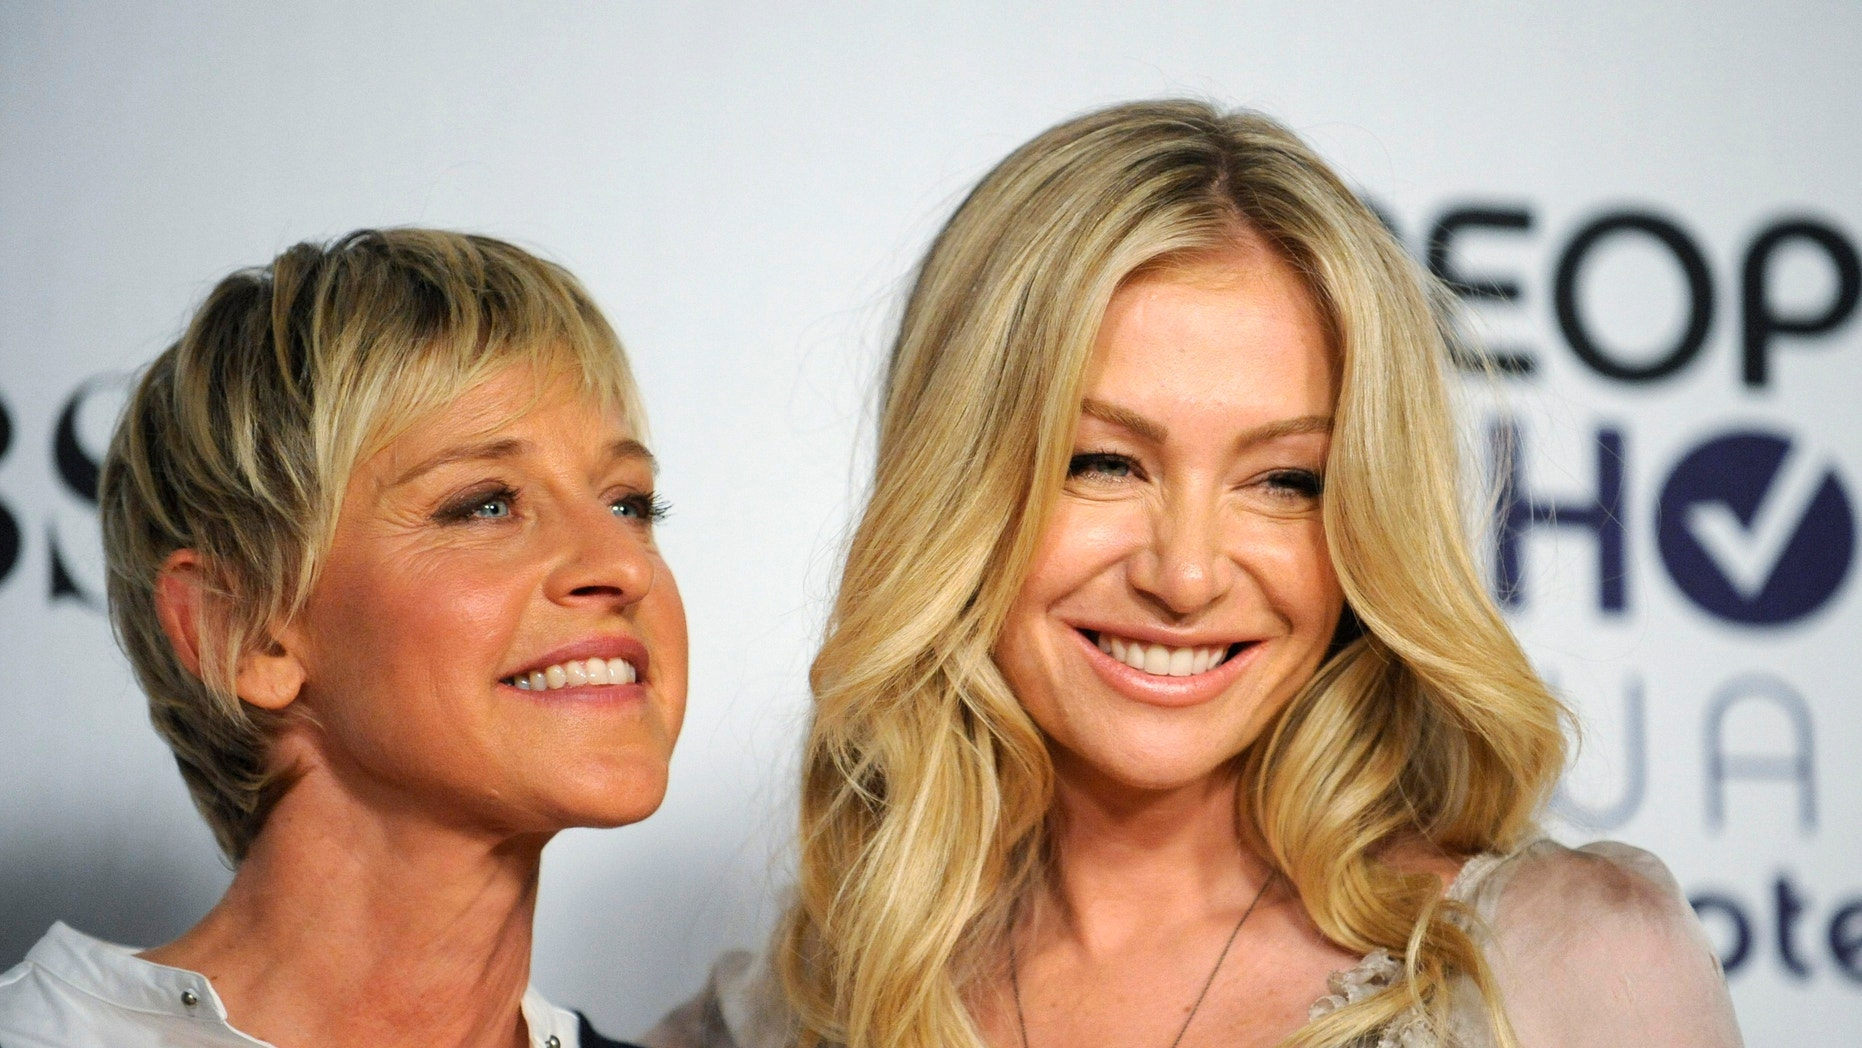 Comedian Ellen Degeneres and actress Portia de Rossi pose backstage after Degeneres won the award for Favorite Talk Show Host at the 35th annual People's Choice awards in Los Angeles January 7, 2009.